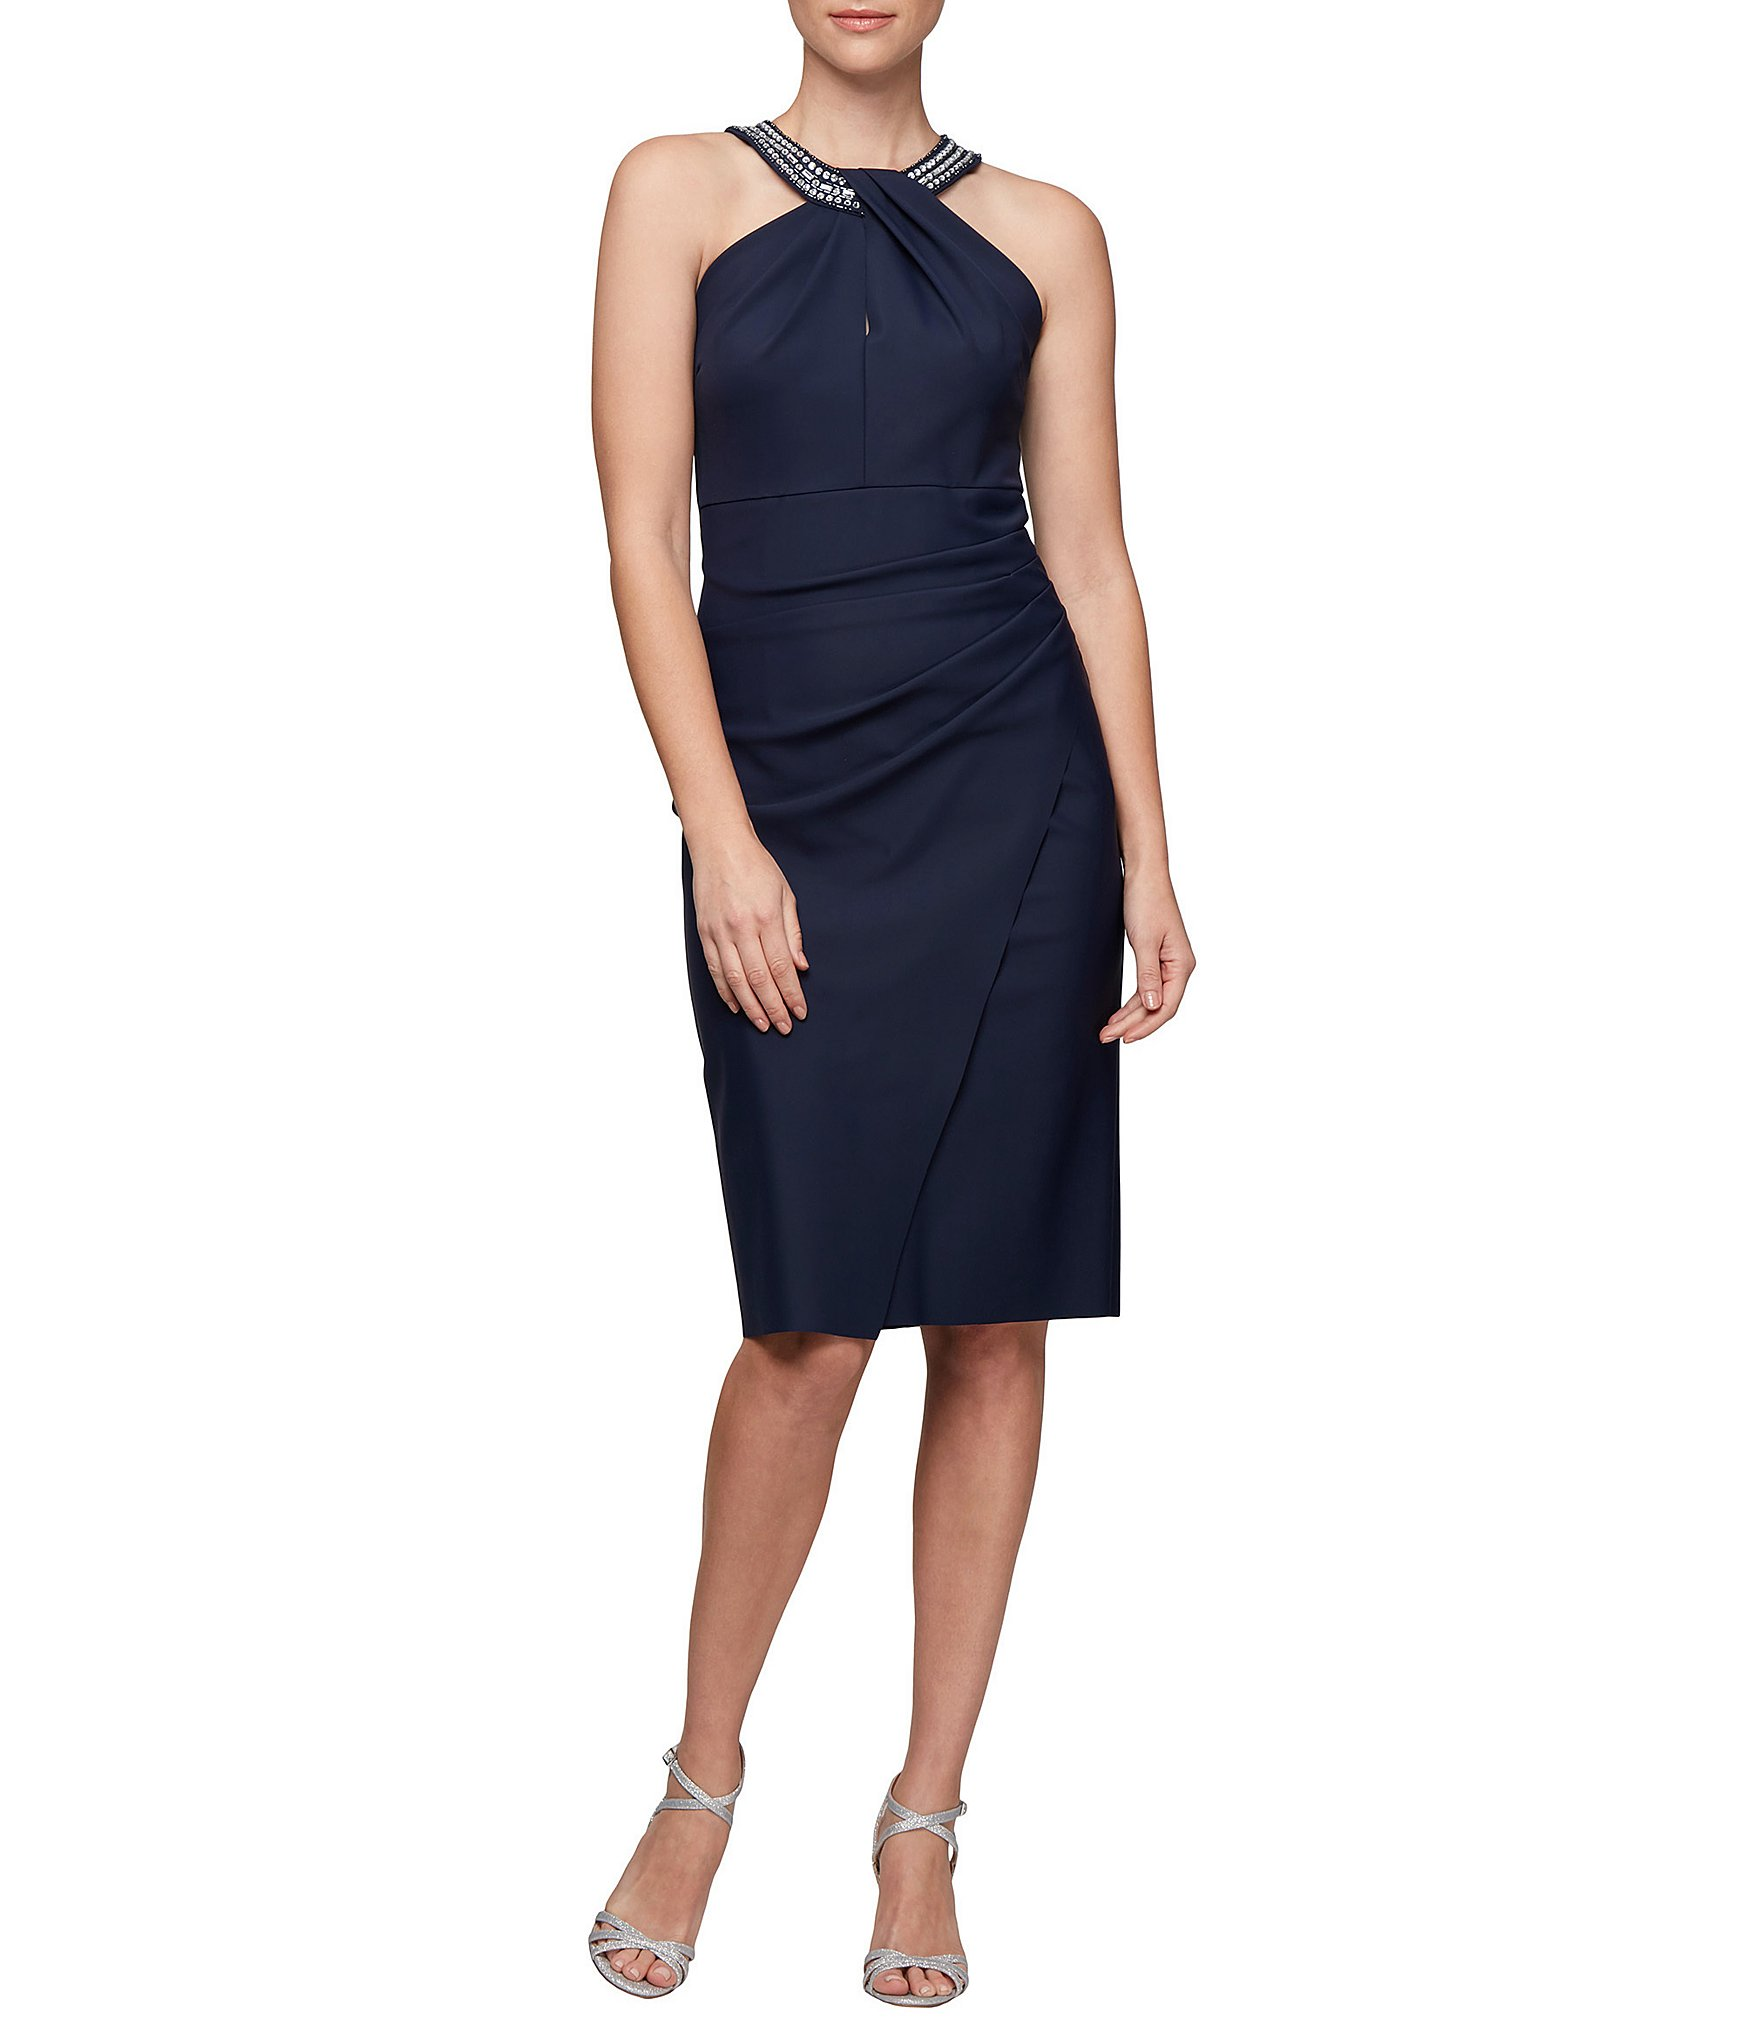 Women\'s Cocktail & Party Dresses | Dillards